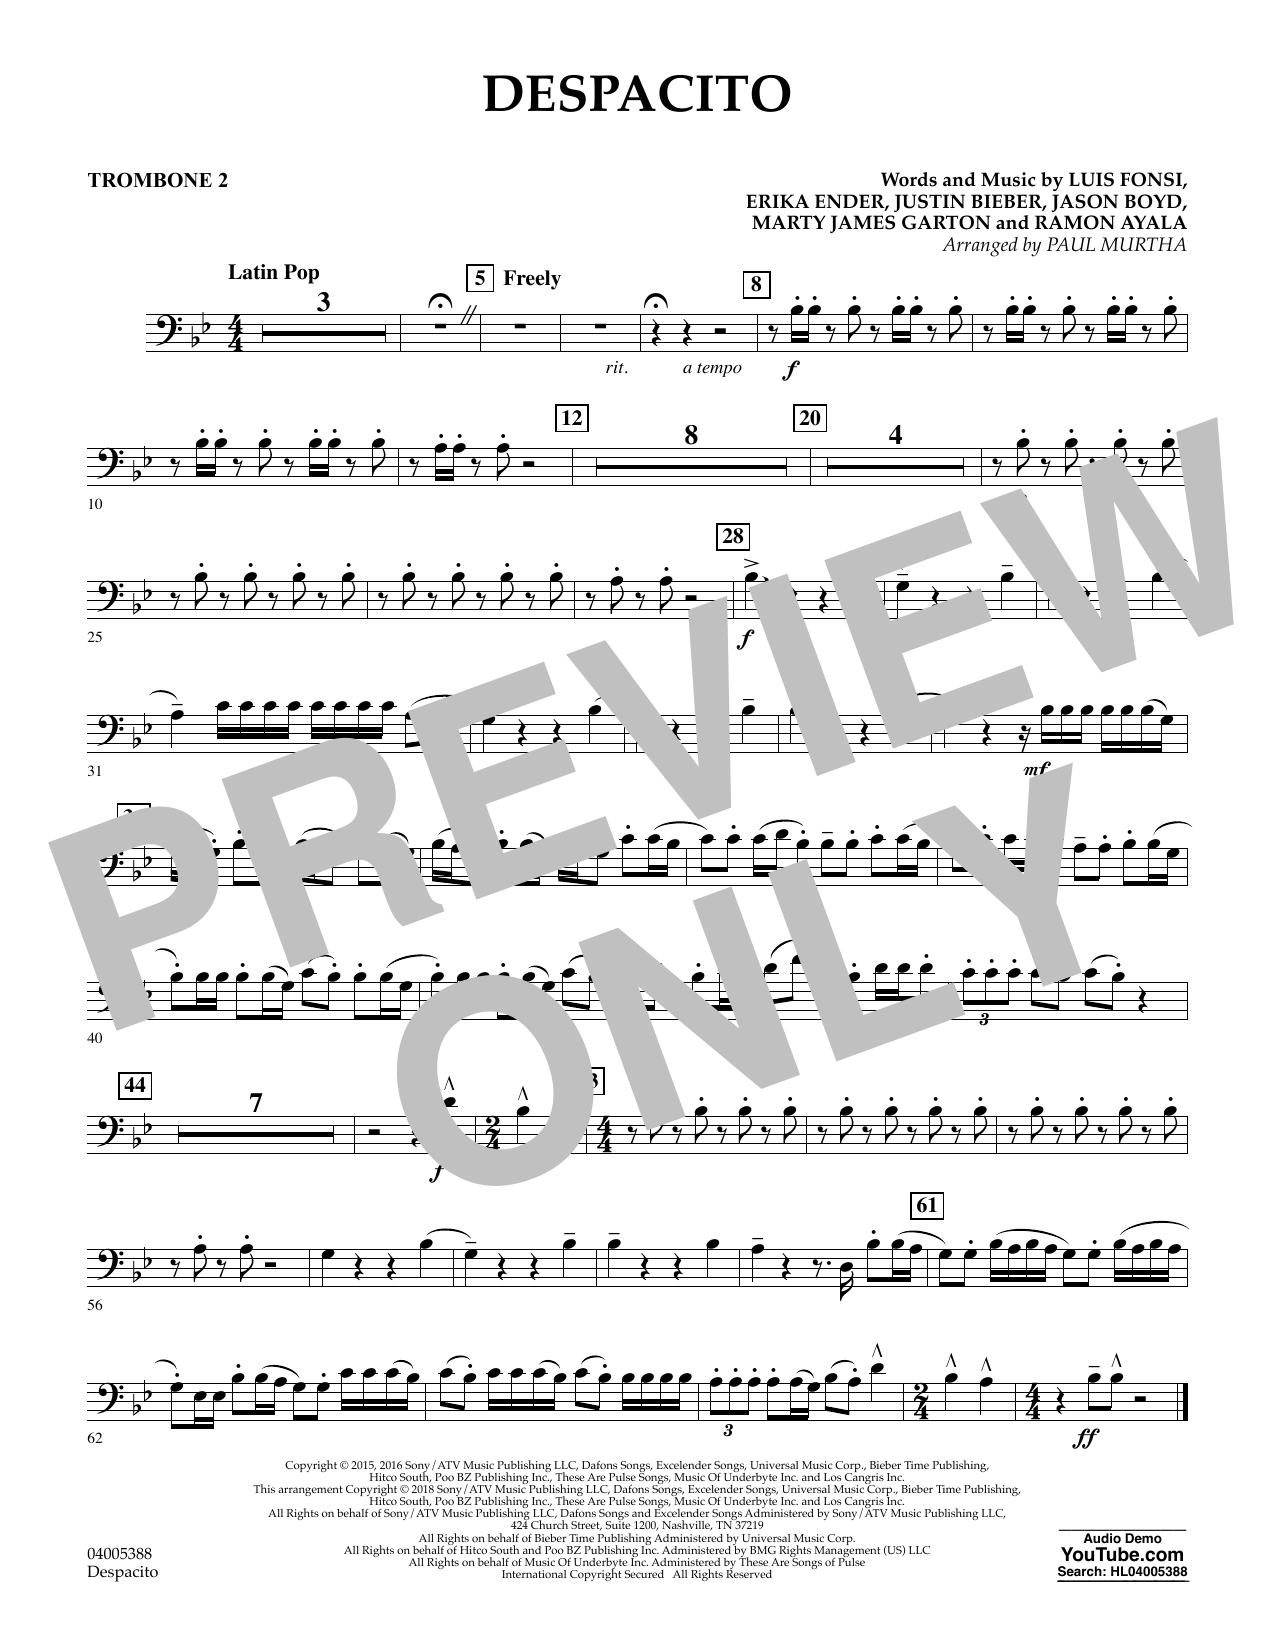 Paul Murtha Despacito - Trombone 2 sheet music notes and chords. Download Printable PDF.